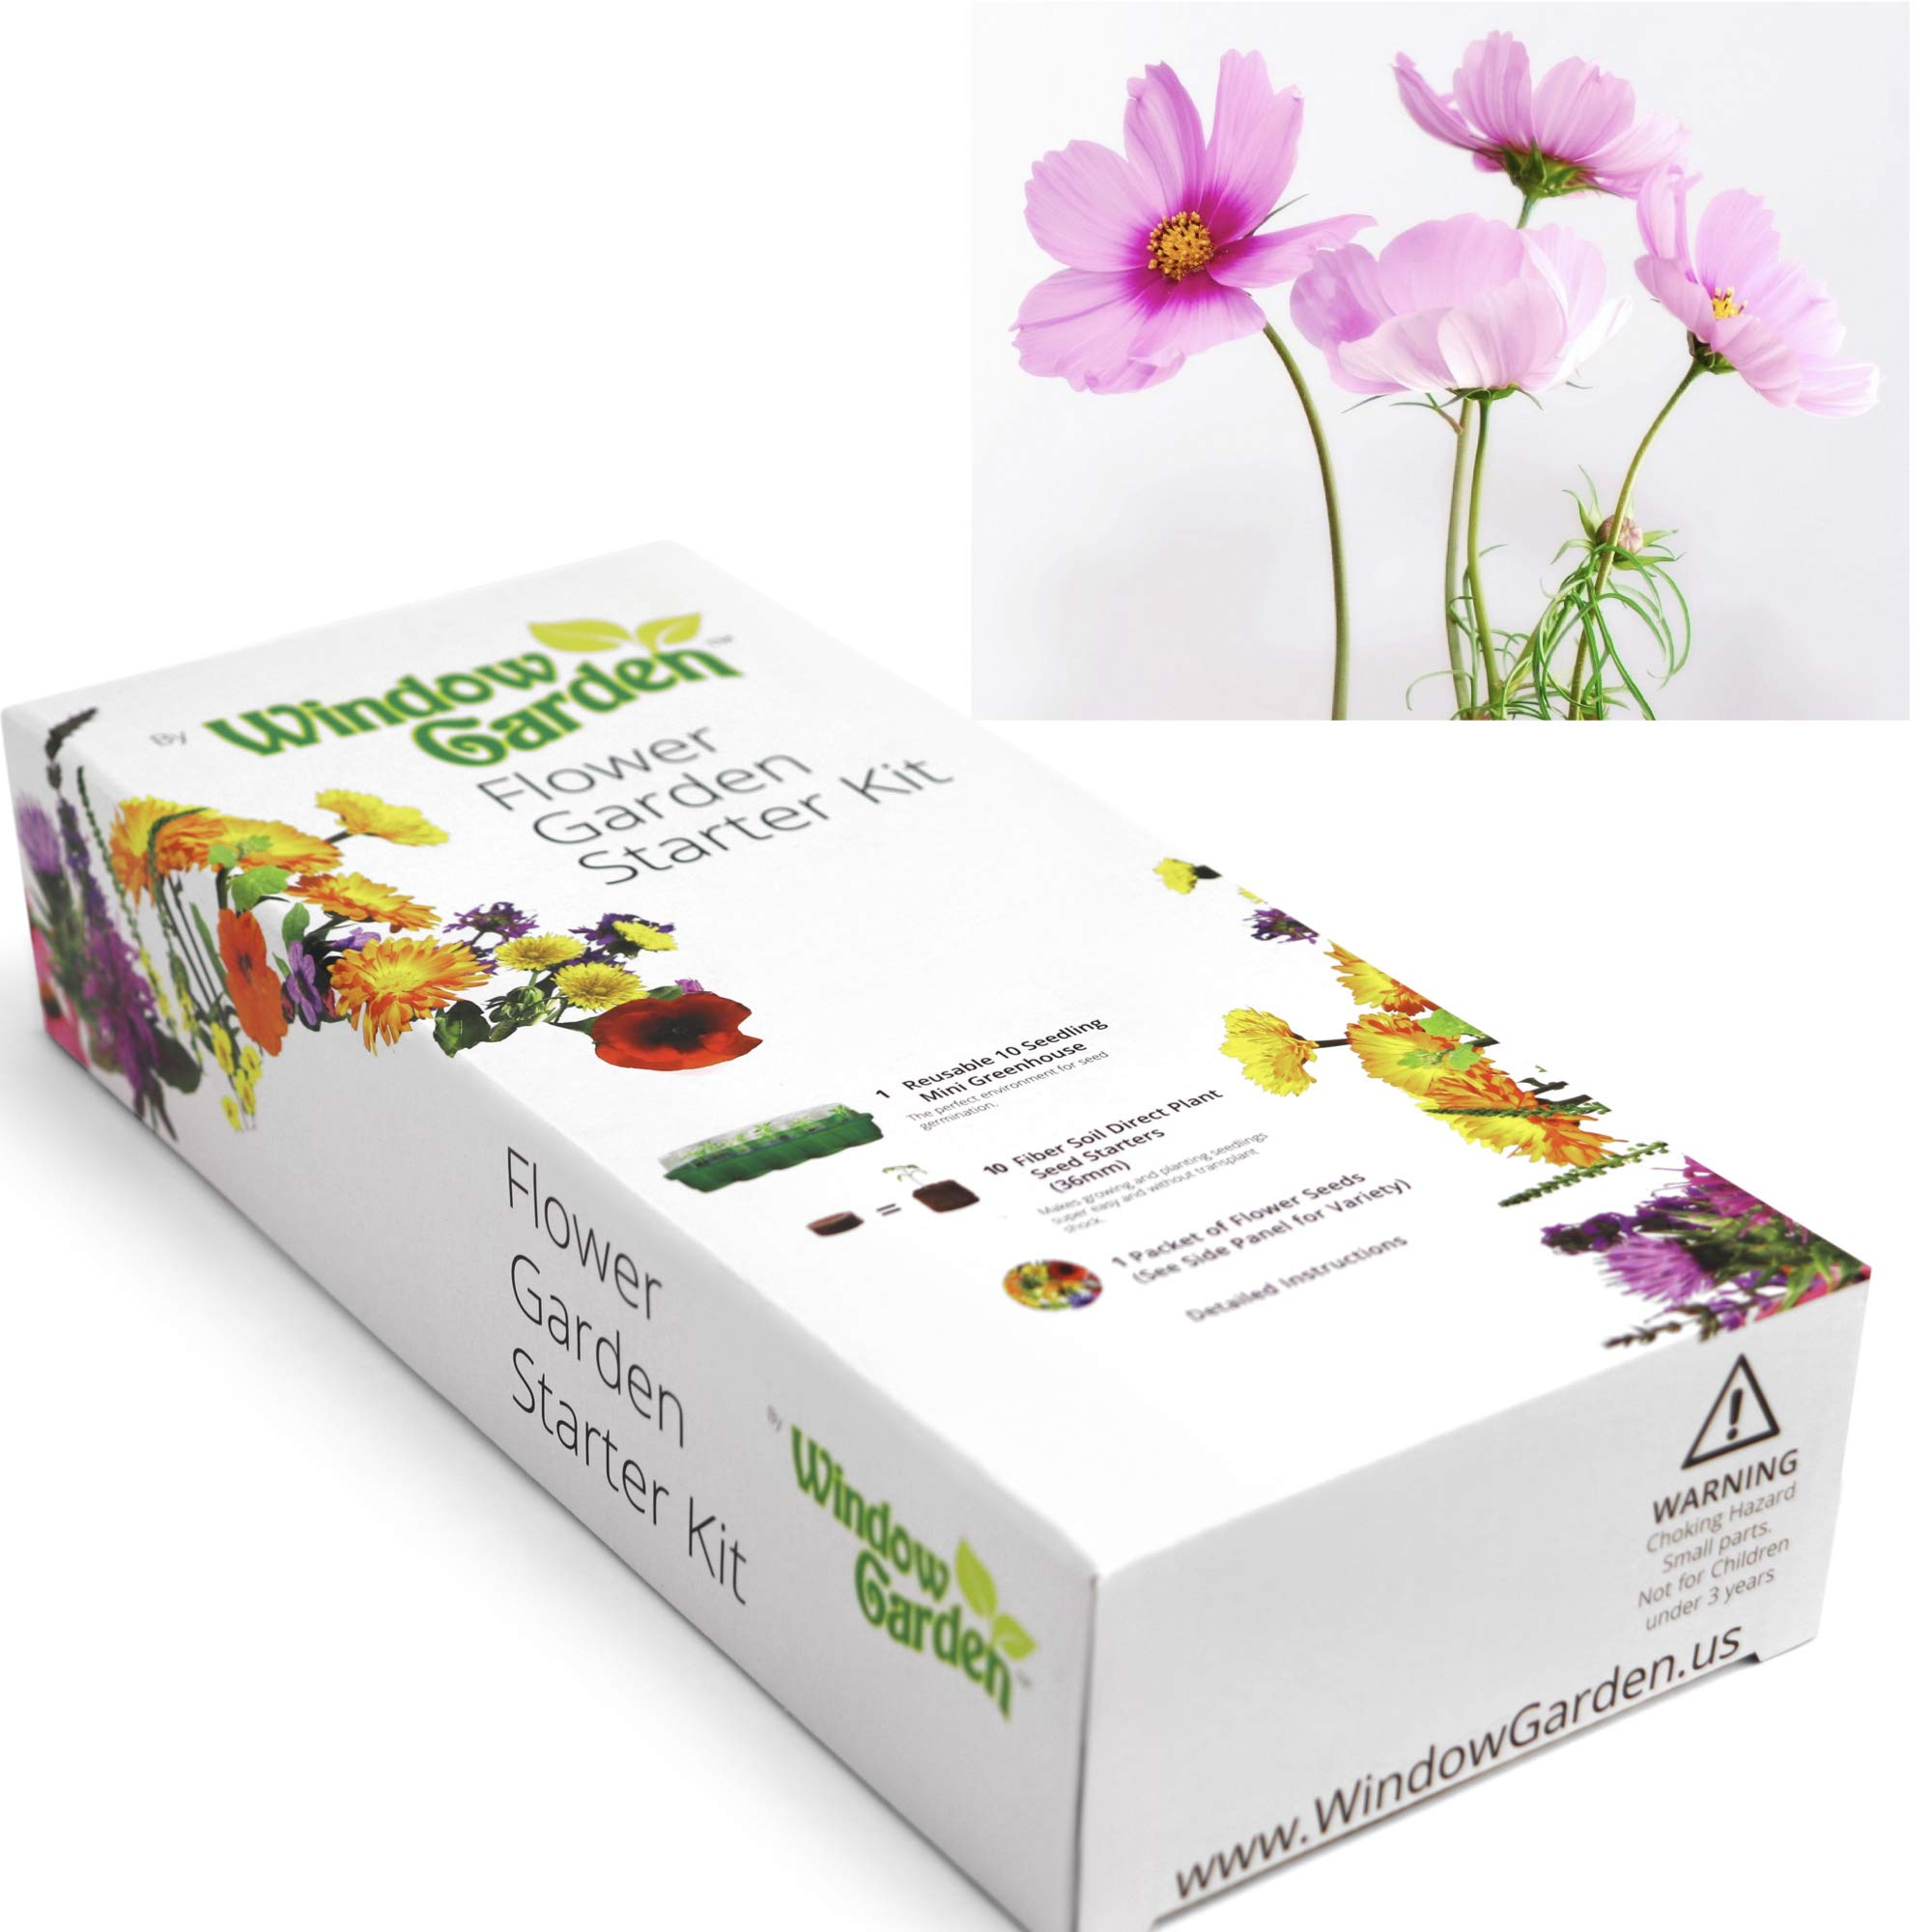 Window Garden - Cosmos Flower Starter Kit - Grow Your Own Beauty. Germinate Seeds on Your Windowsill Then Move to Patio Planter or Landscape. Mini Greenhouse System Make's it Foolproof, Easy and Fun.